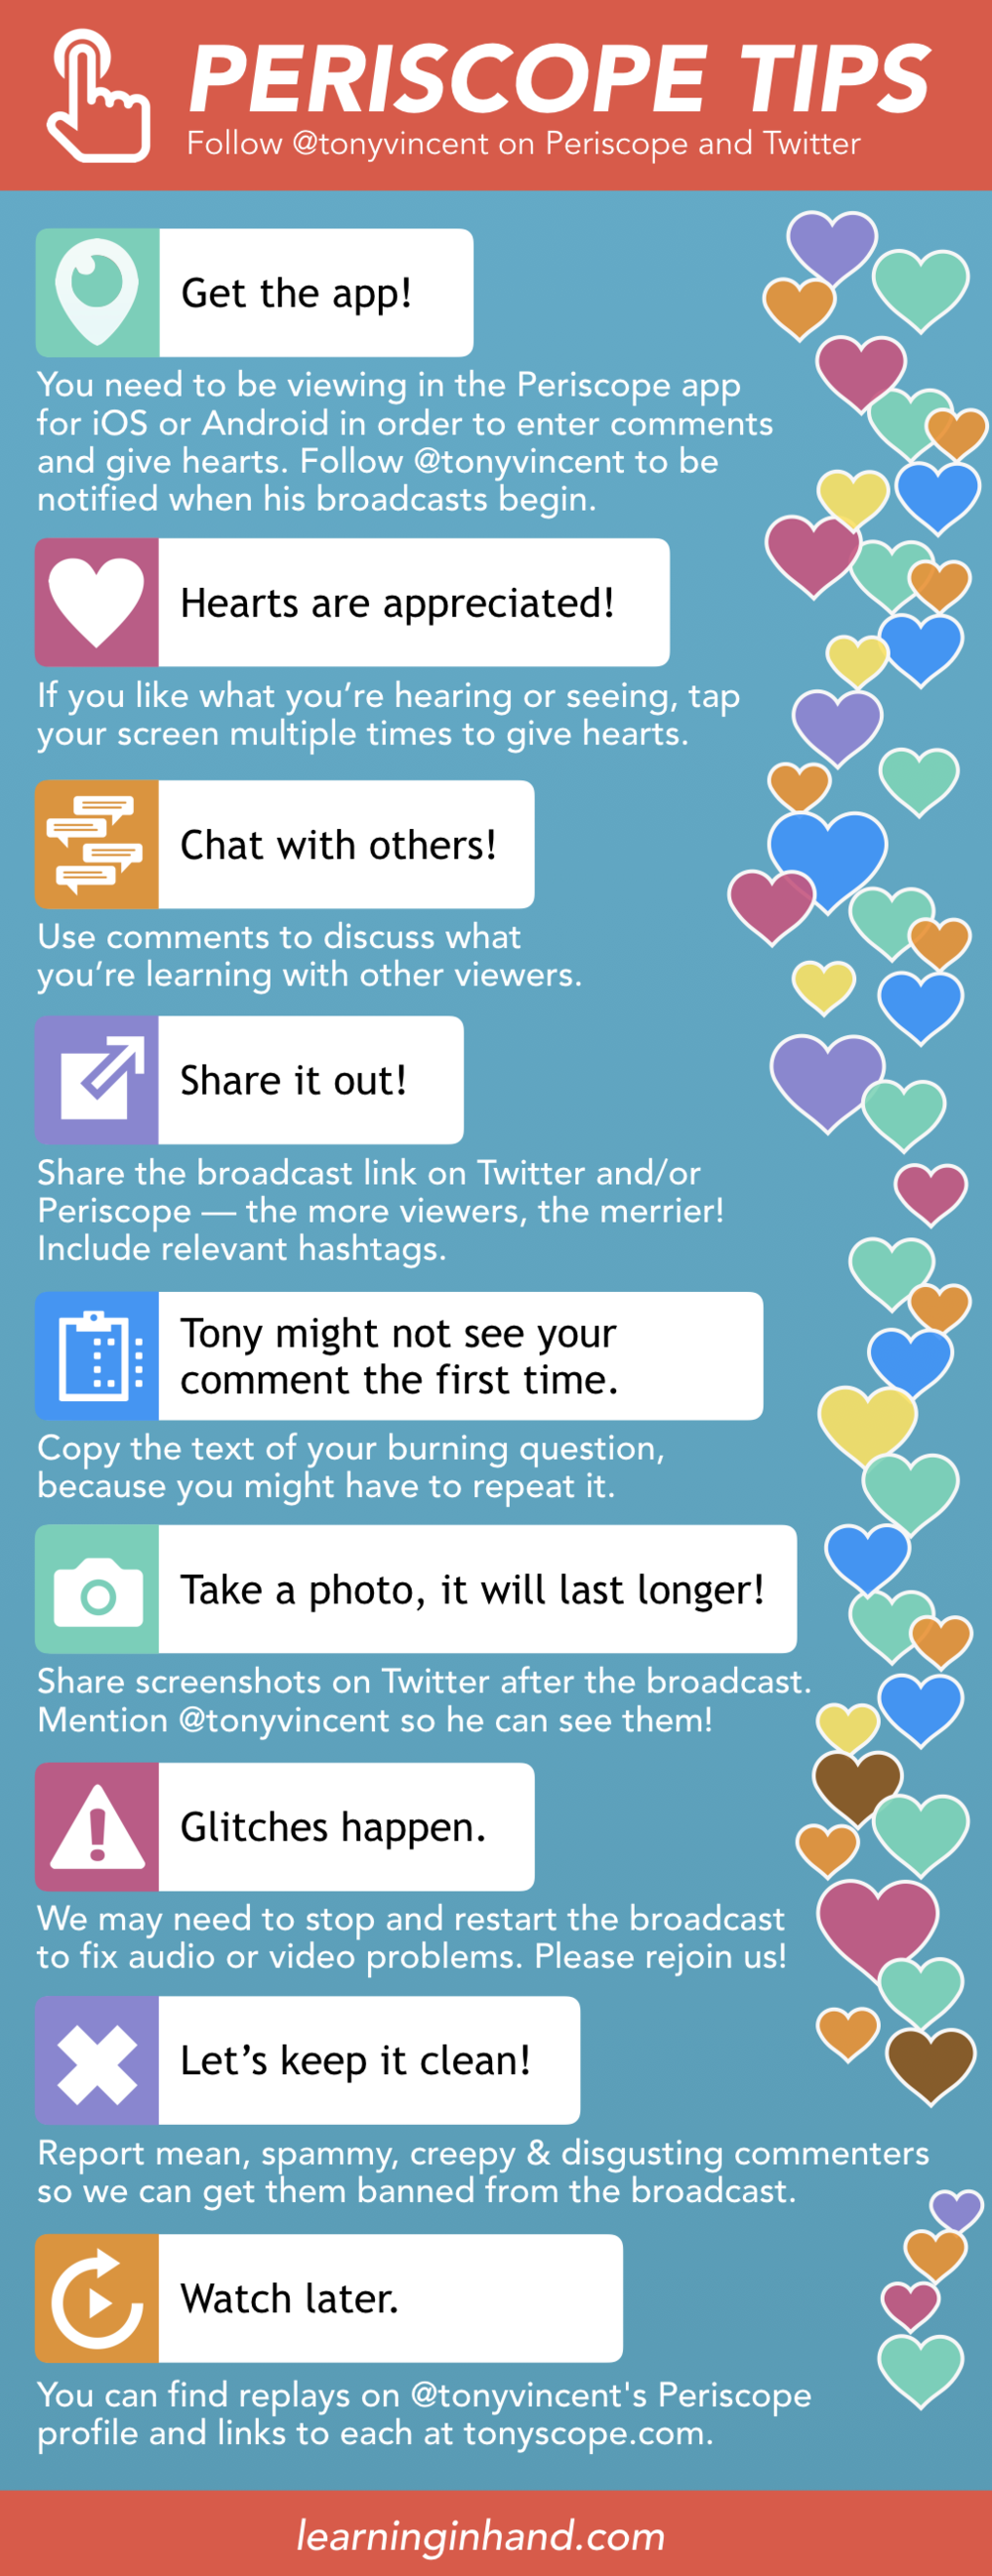 Periscope Tips Graphic GaETC16.001.png